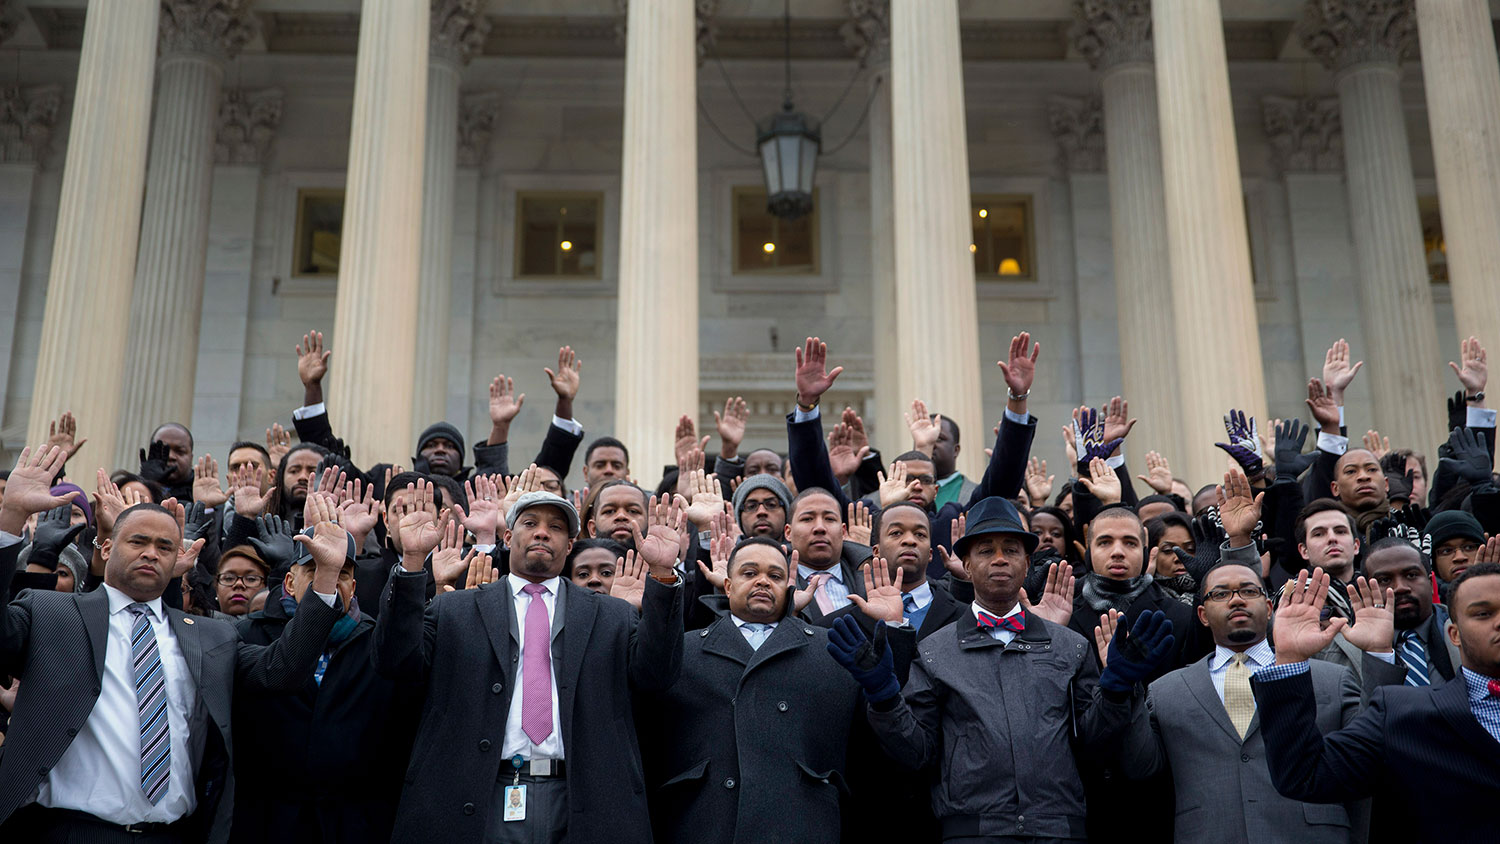 Congressional staff members raise their hands on the U.S. Capitol steps during a protest in Washington on Dec. 11, 2014.